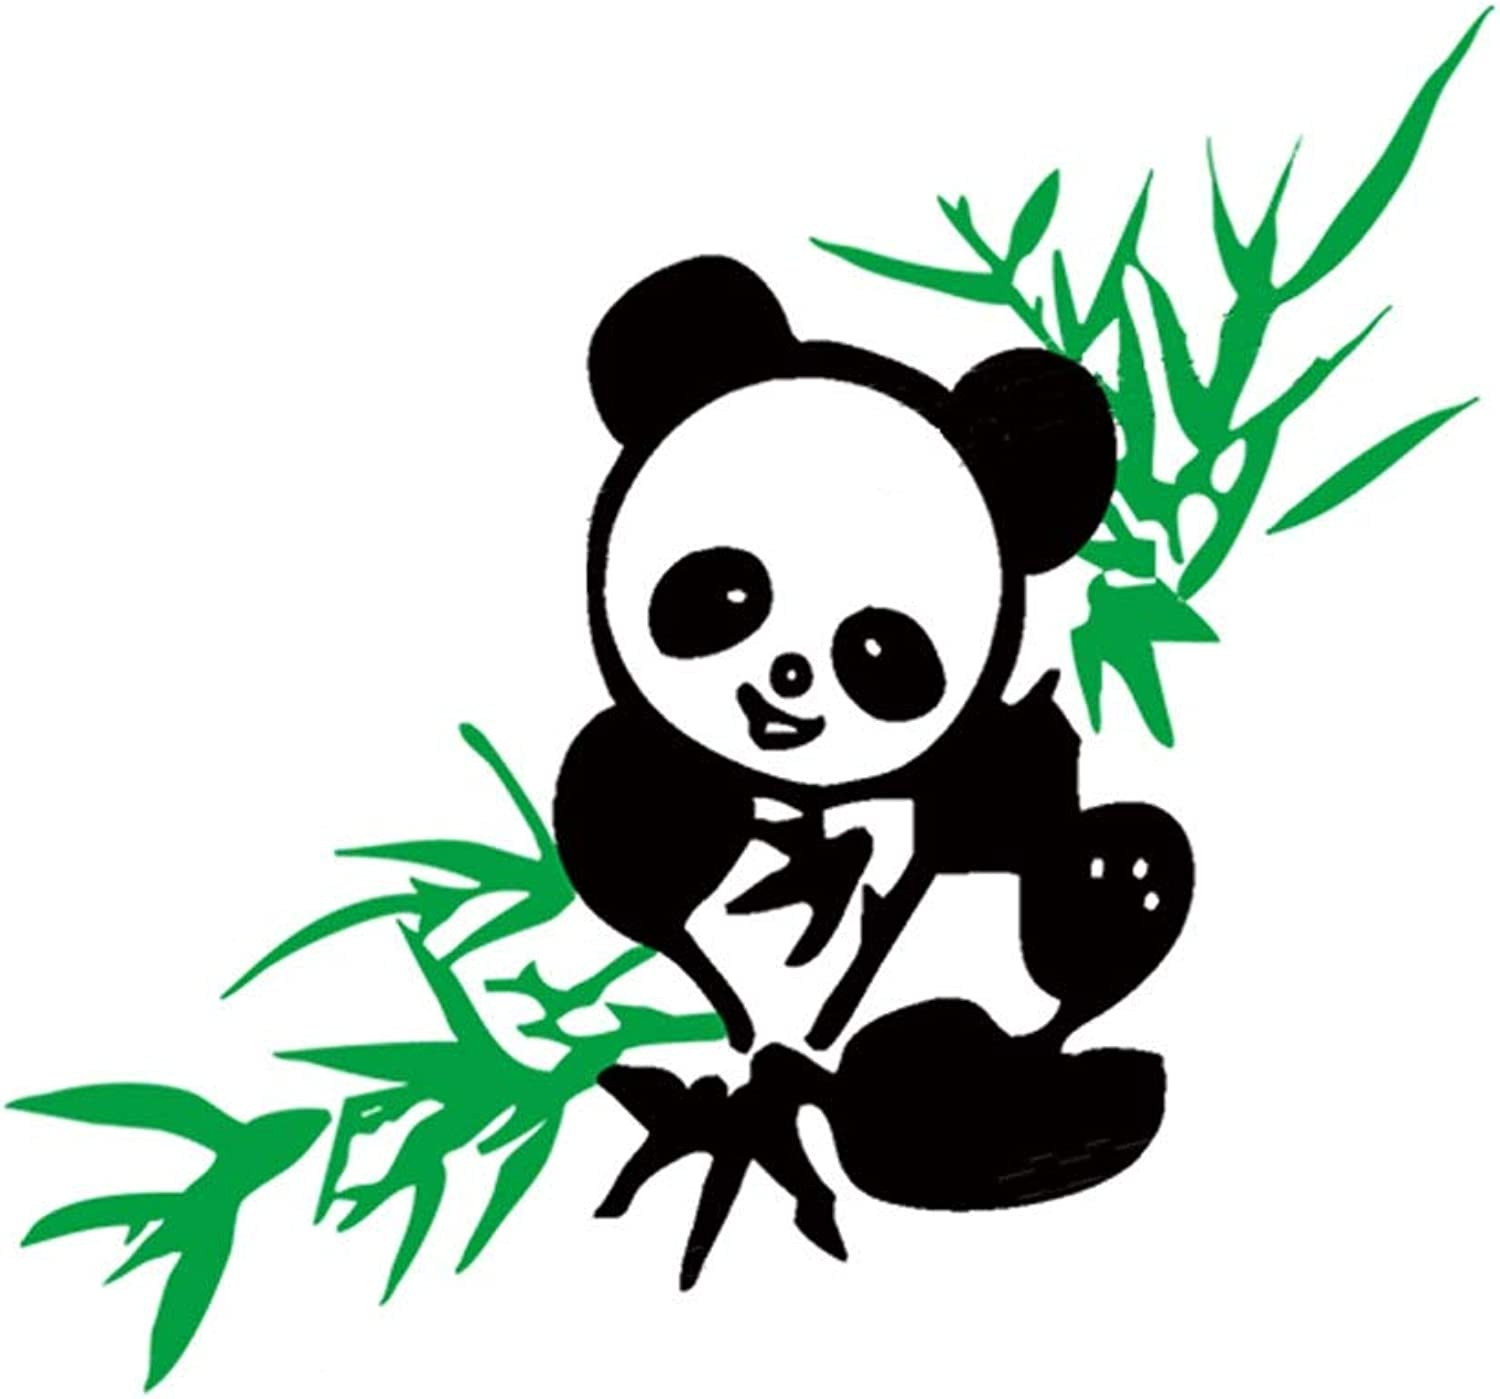 Bamboo Panda Crystal Texture Acrylic 3D Stereo Effect Wall Sticker Room Decoration (color   Green, Size   80cm×75cm)